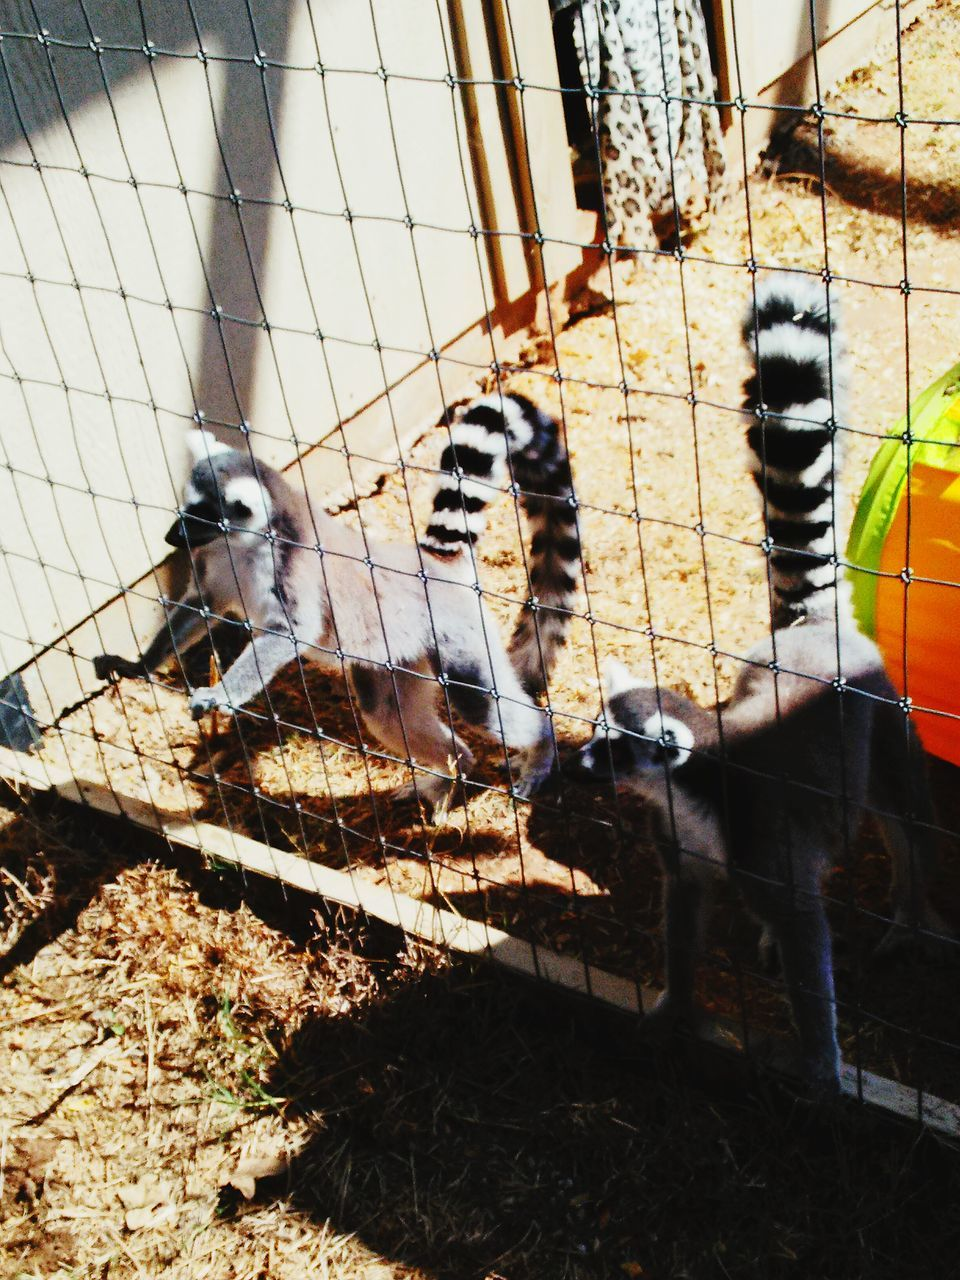 animal themes, mammal, domestic animals, cage, animals in captivity, no people, day, animal wildlife, pets, bird, animals in the wild, large group of animals, livestock, outdoors, nature, close-up